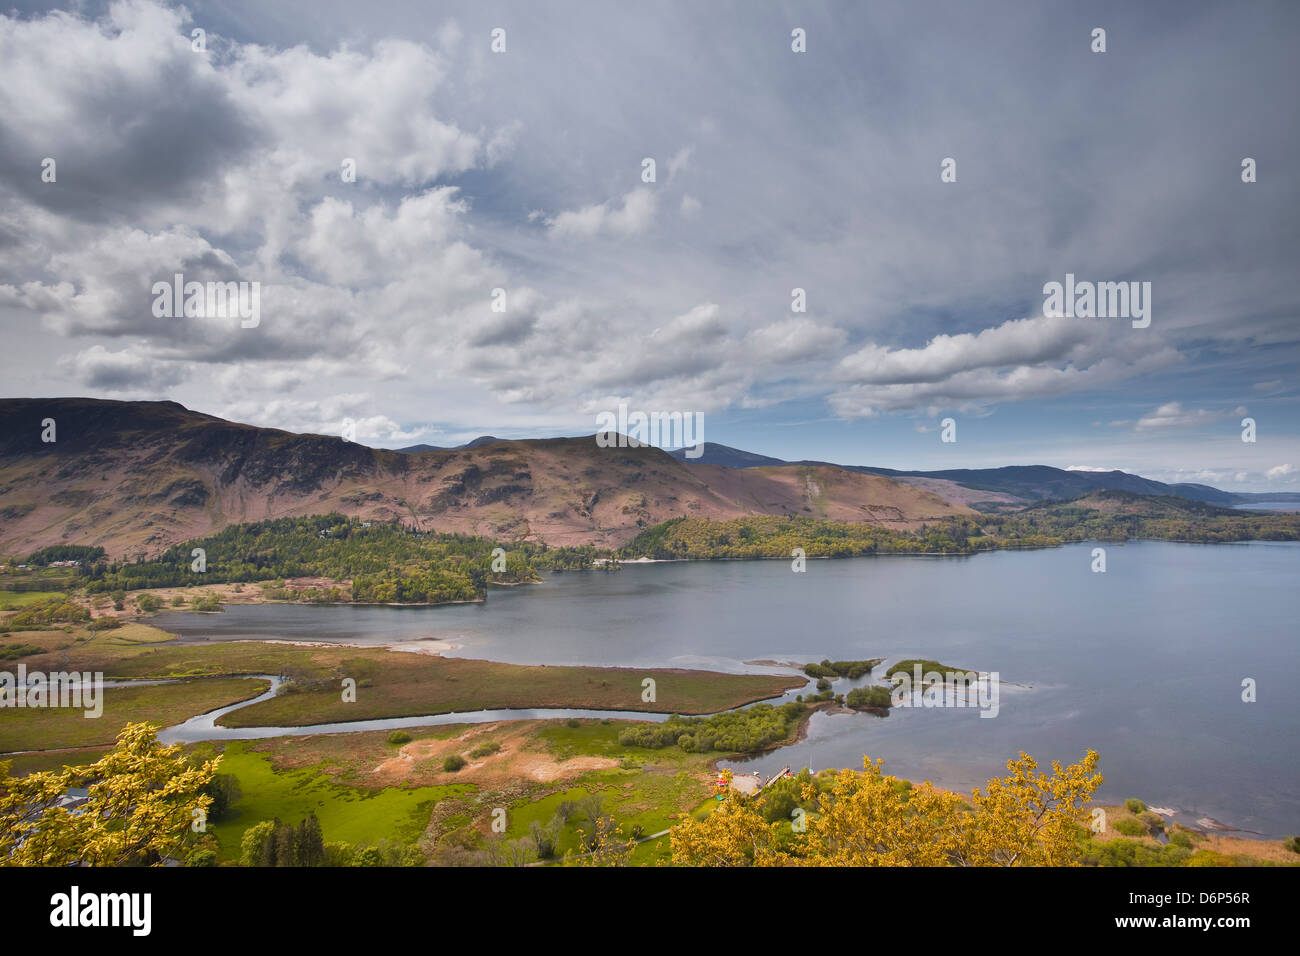 Derwent Water and the surrounding fells in the Lake District National Park, Cumbria, England, United Kingdom, Europe - Stock Image